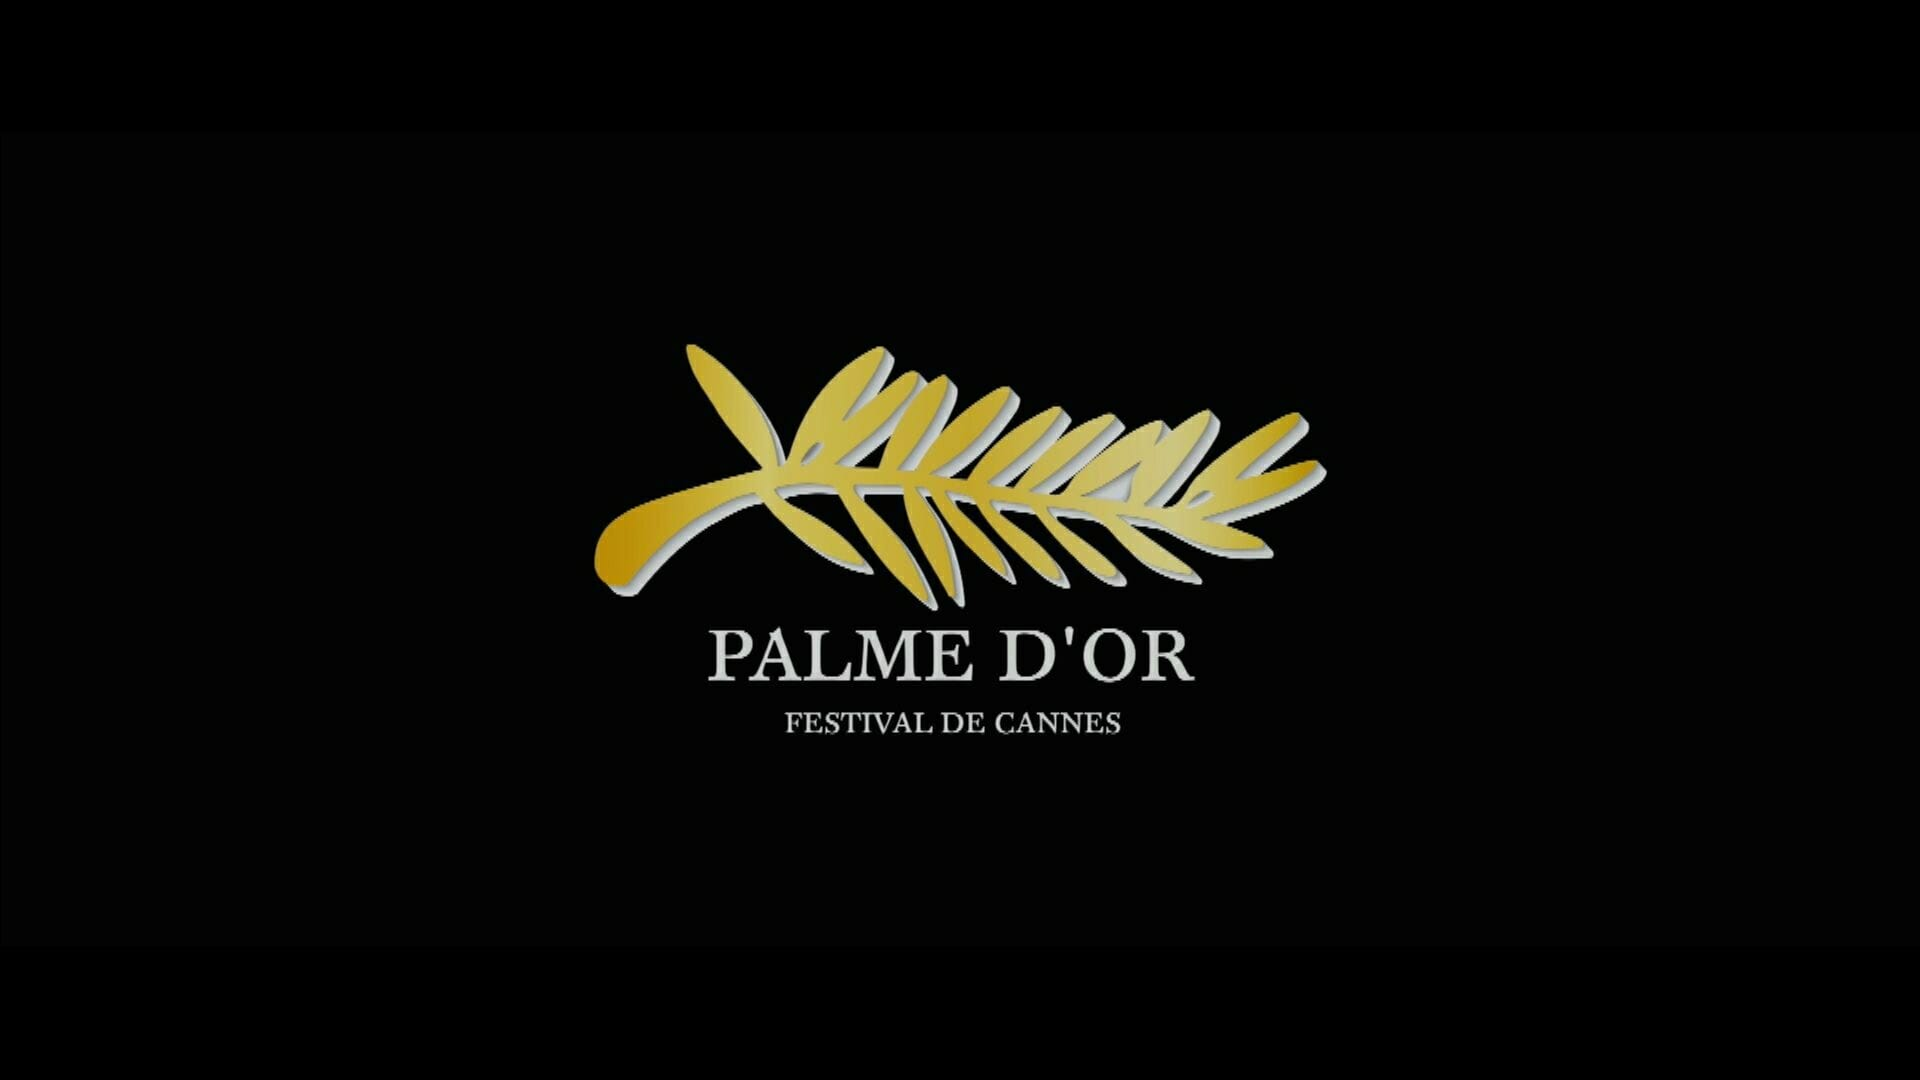 Palme d'Or: The Results